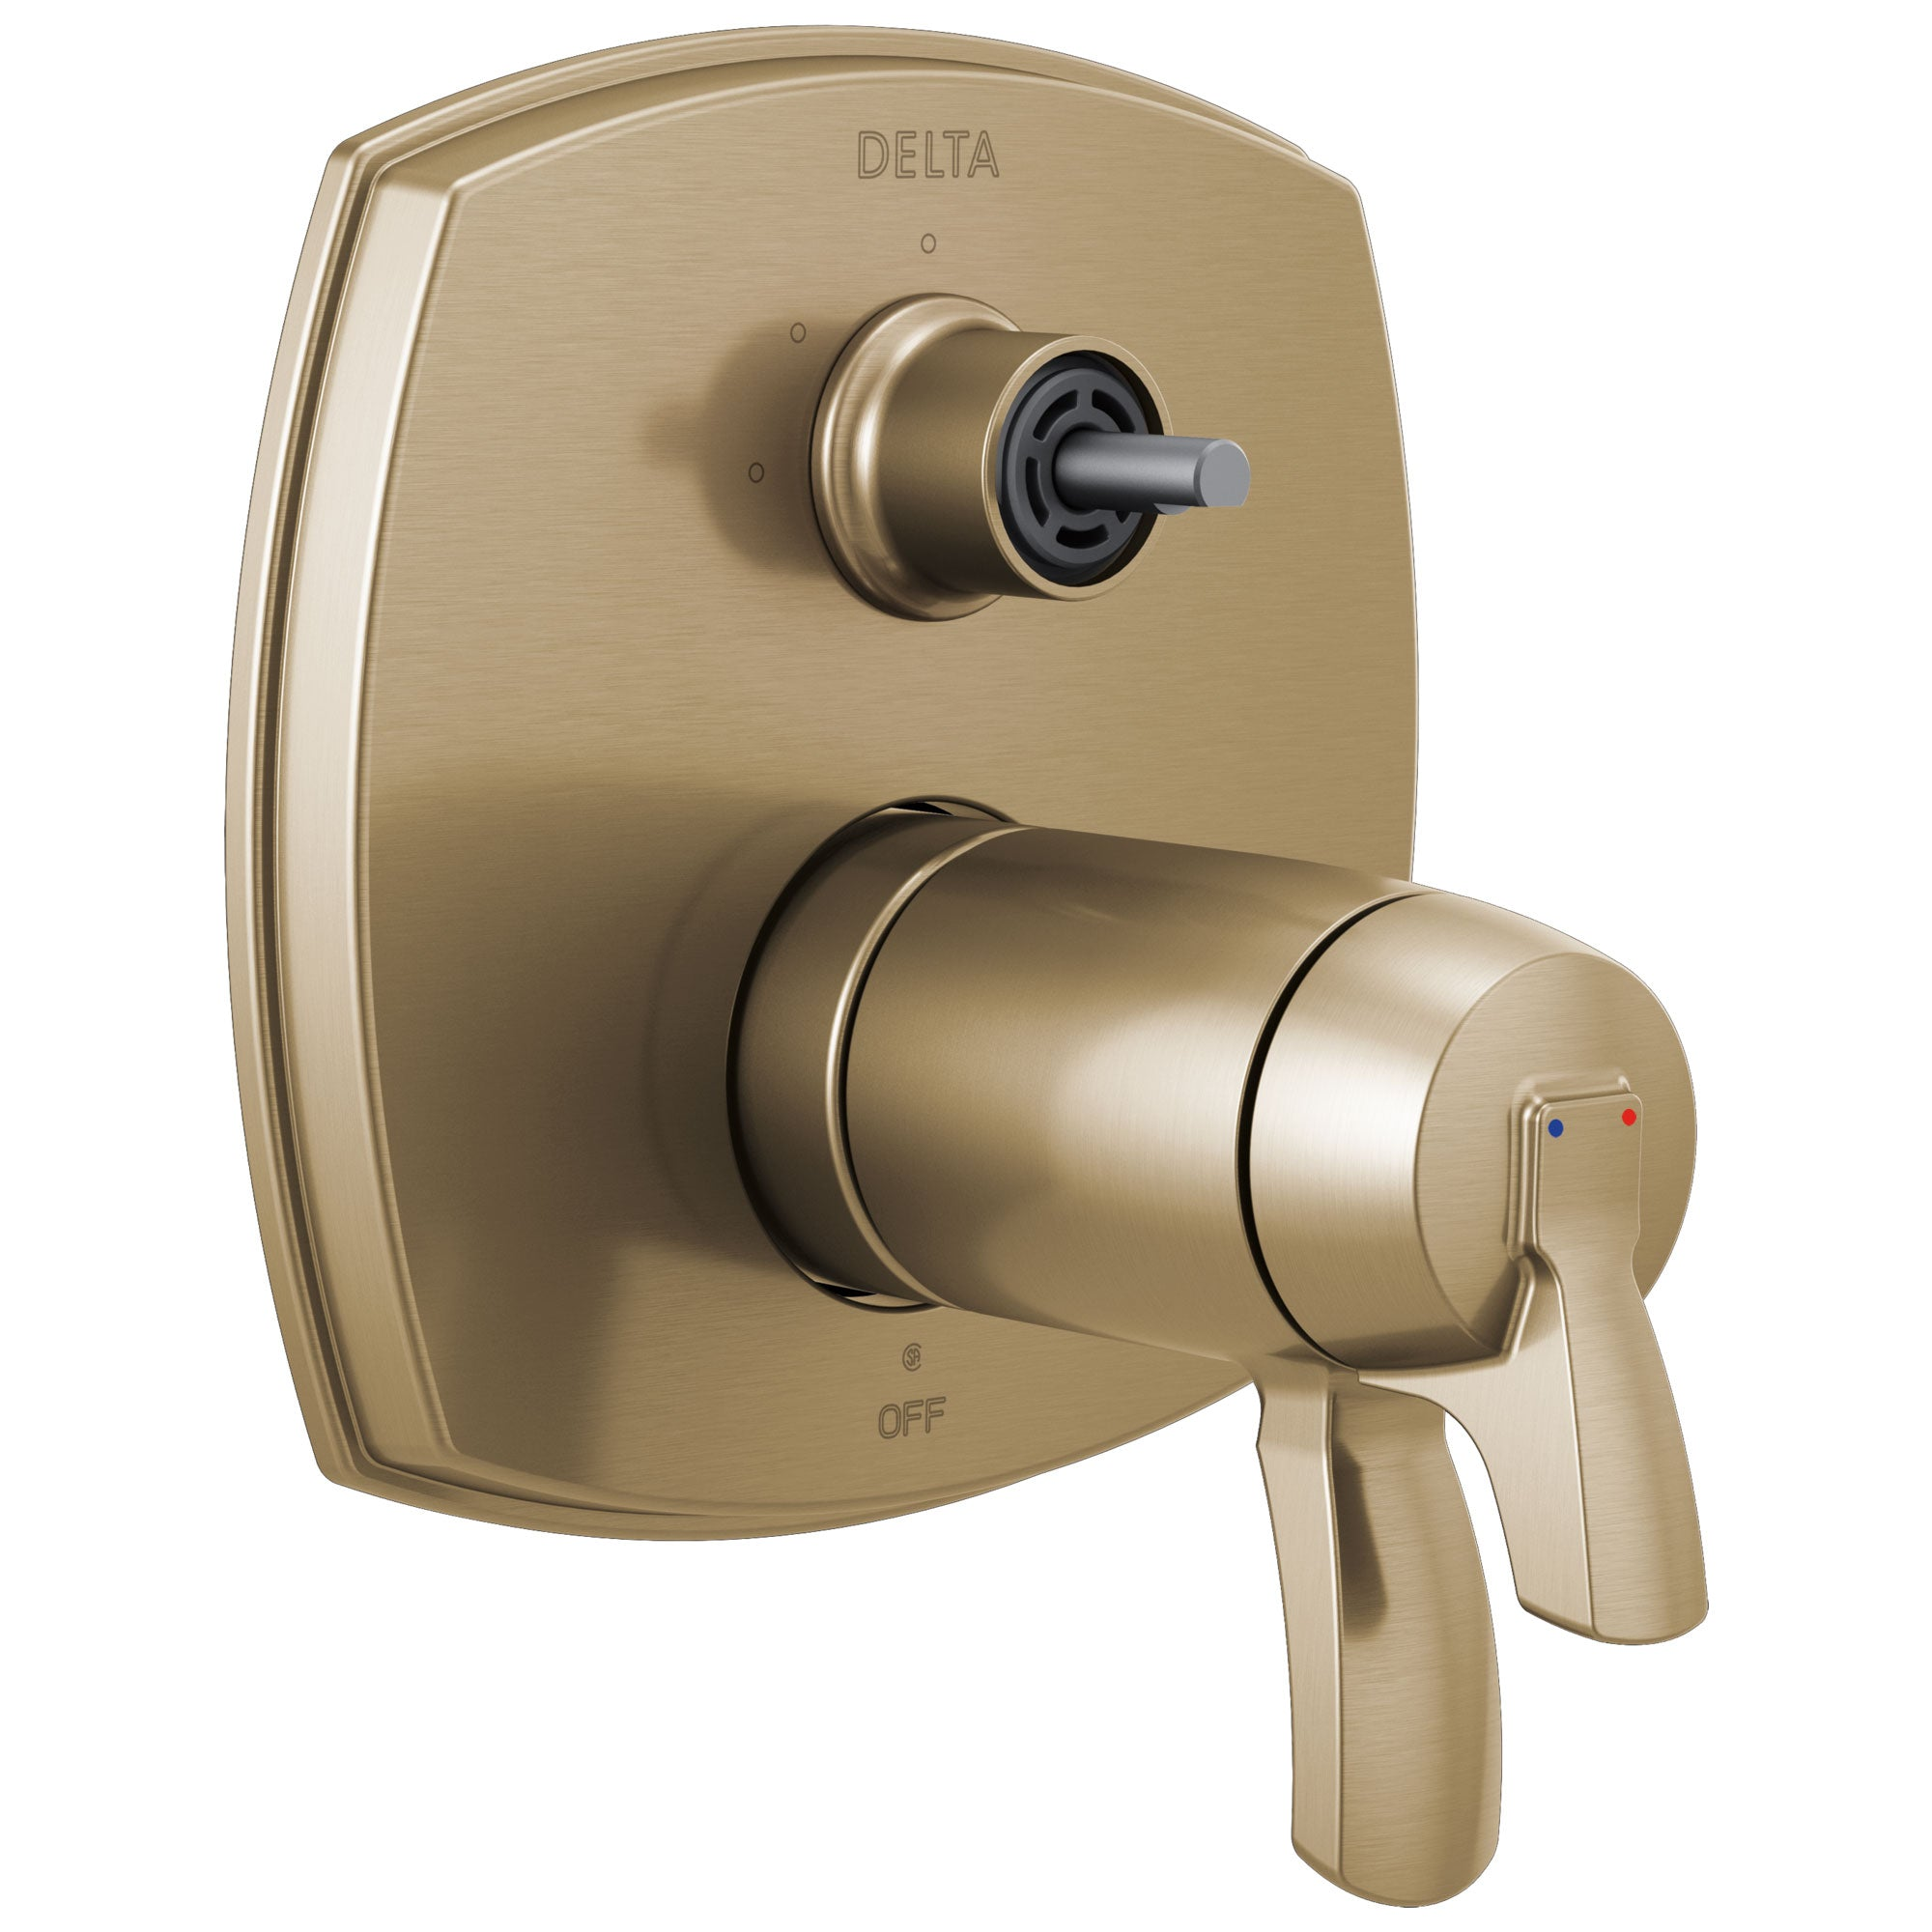 Delta Stryke Champagne Bronze Finish 17 Thermostatic Integrated Diverter Shower Control Trim Kit with Three Function Diverter Less Diverter Handle (Requires Valve) DT27T876CZLHP